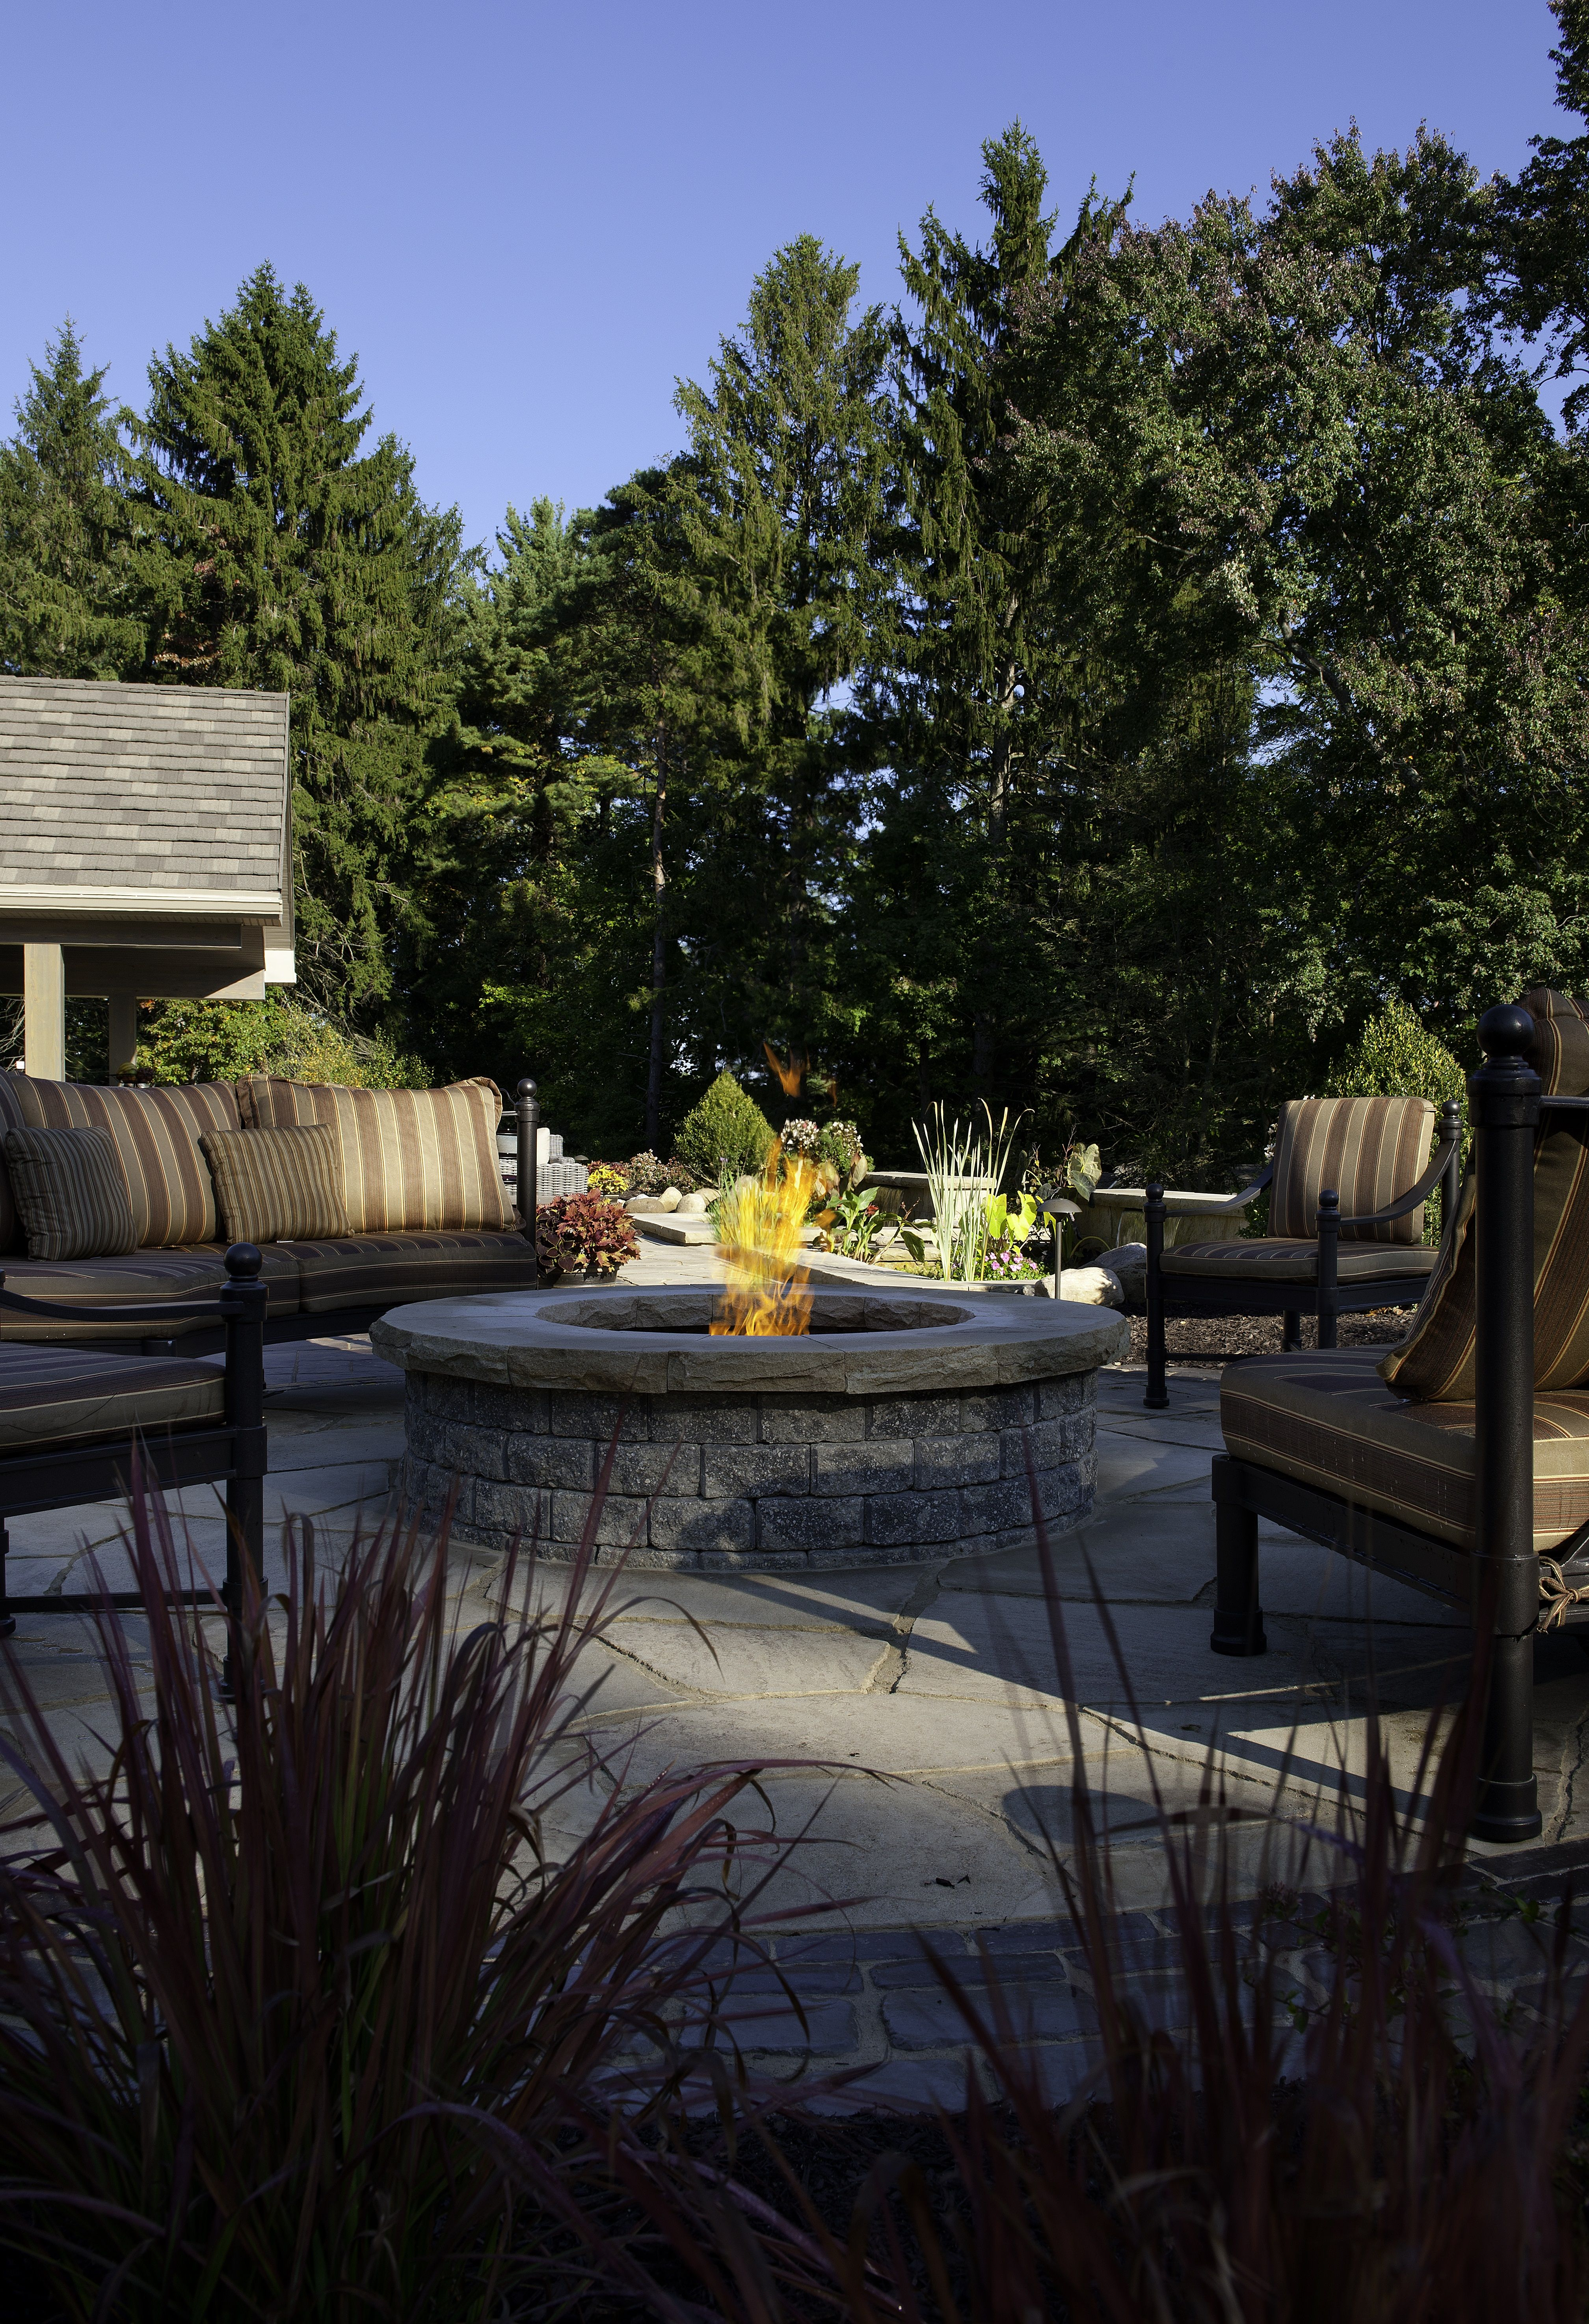 Pin by Funyak Landscapes on AUGUST PROJECT. | Outdoor ...